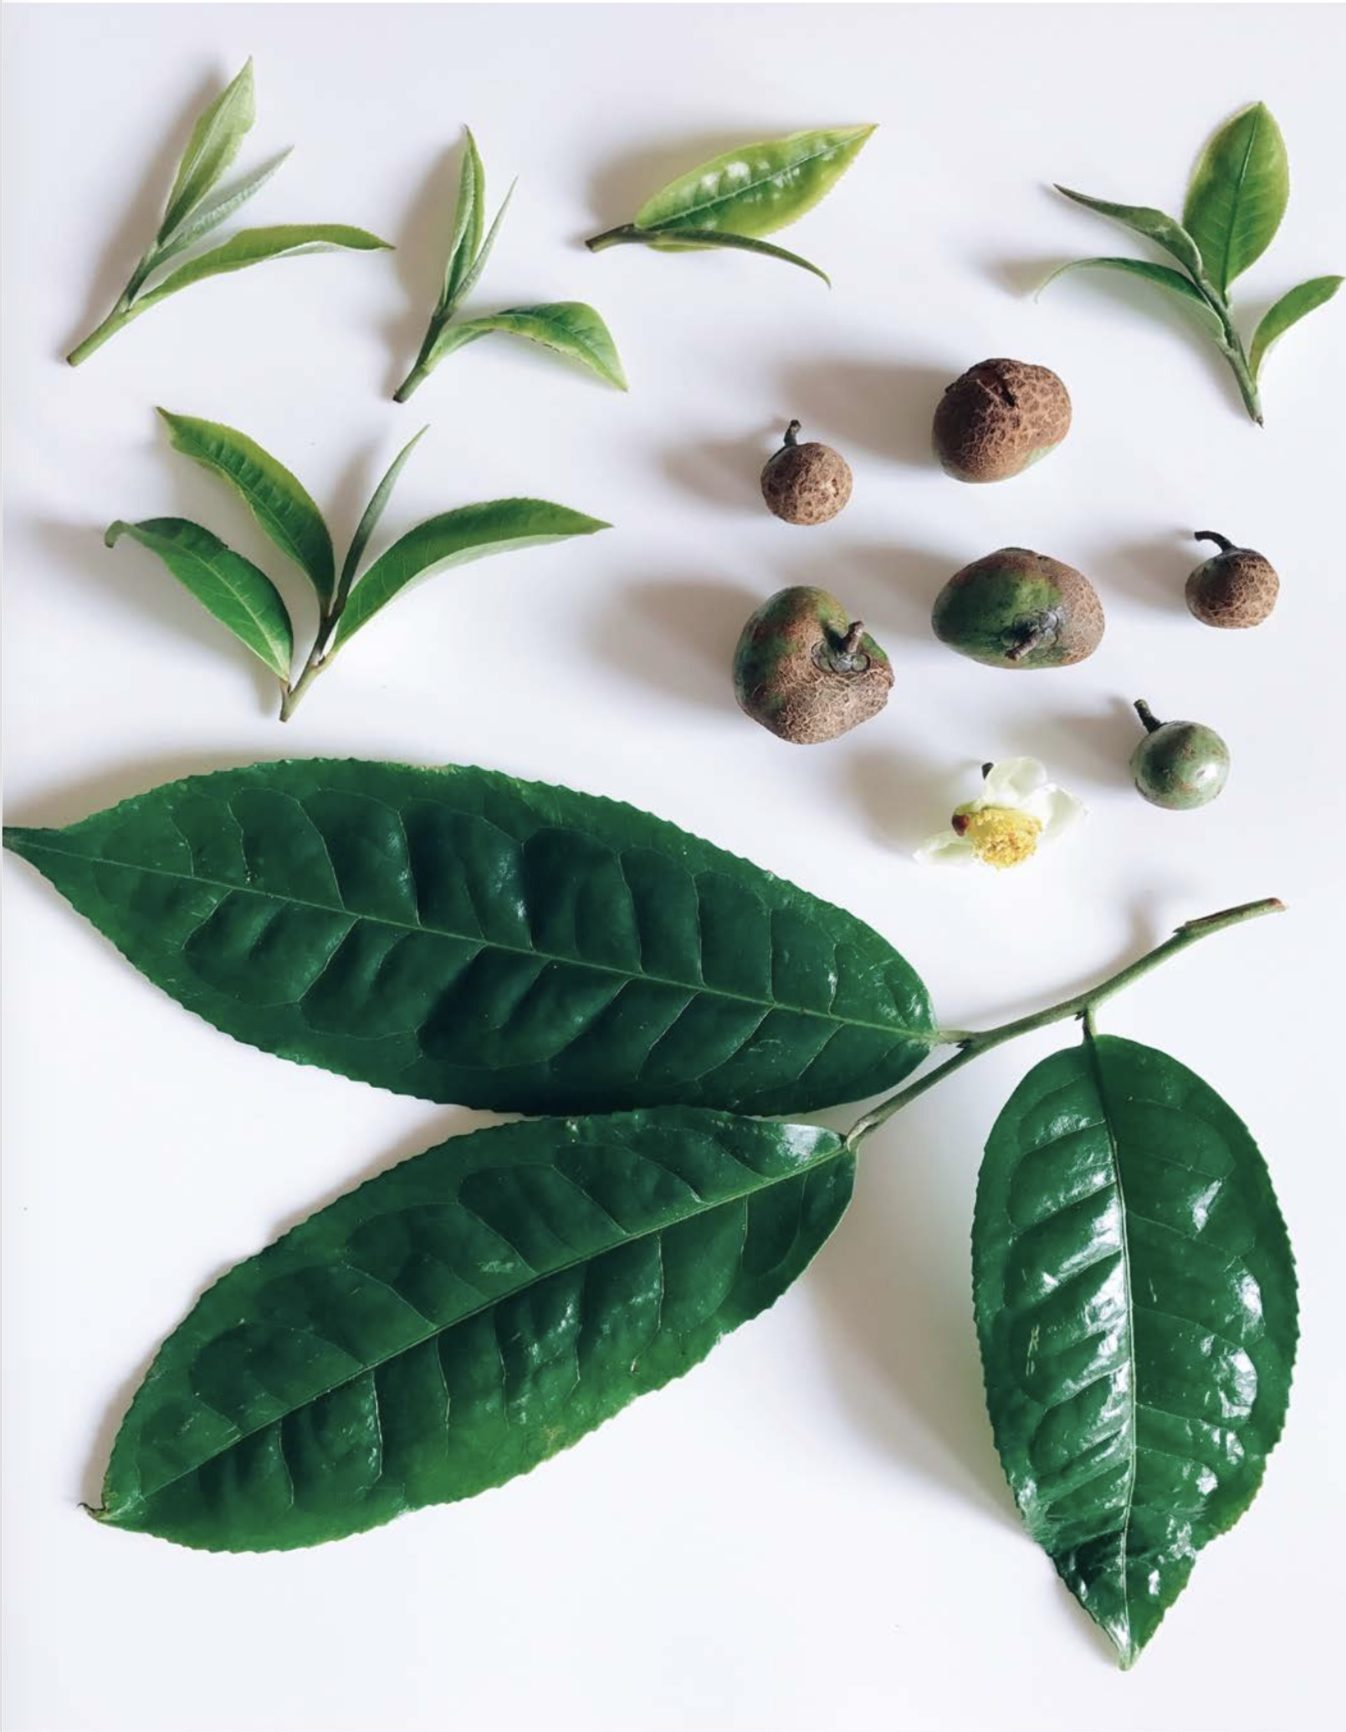 What is Tea? – Origins and Categorization of Camellia Sinensis